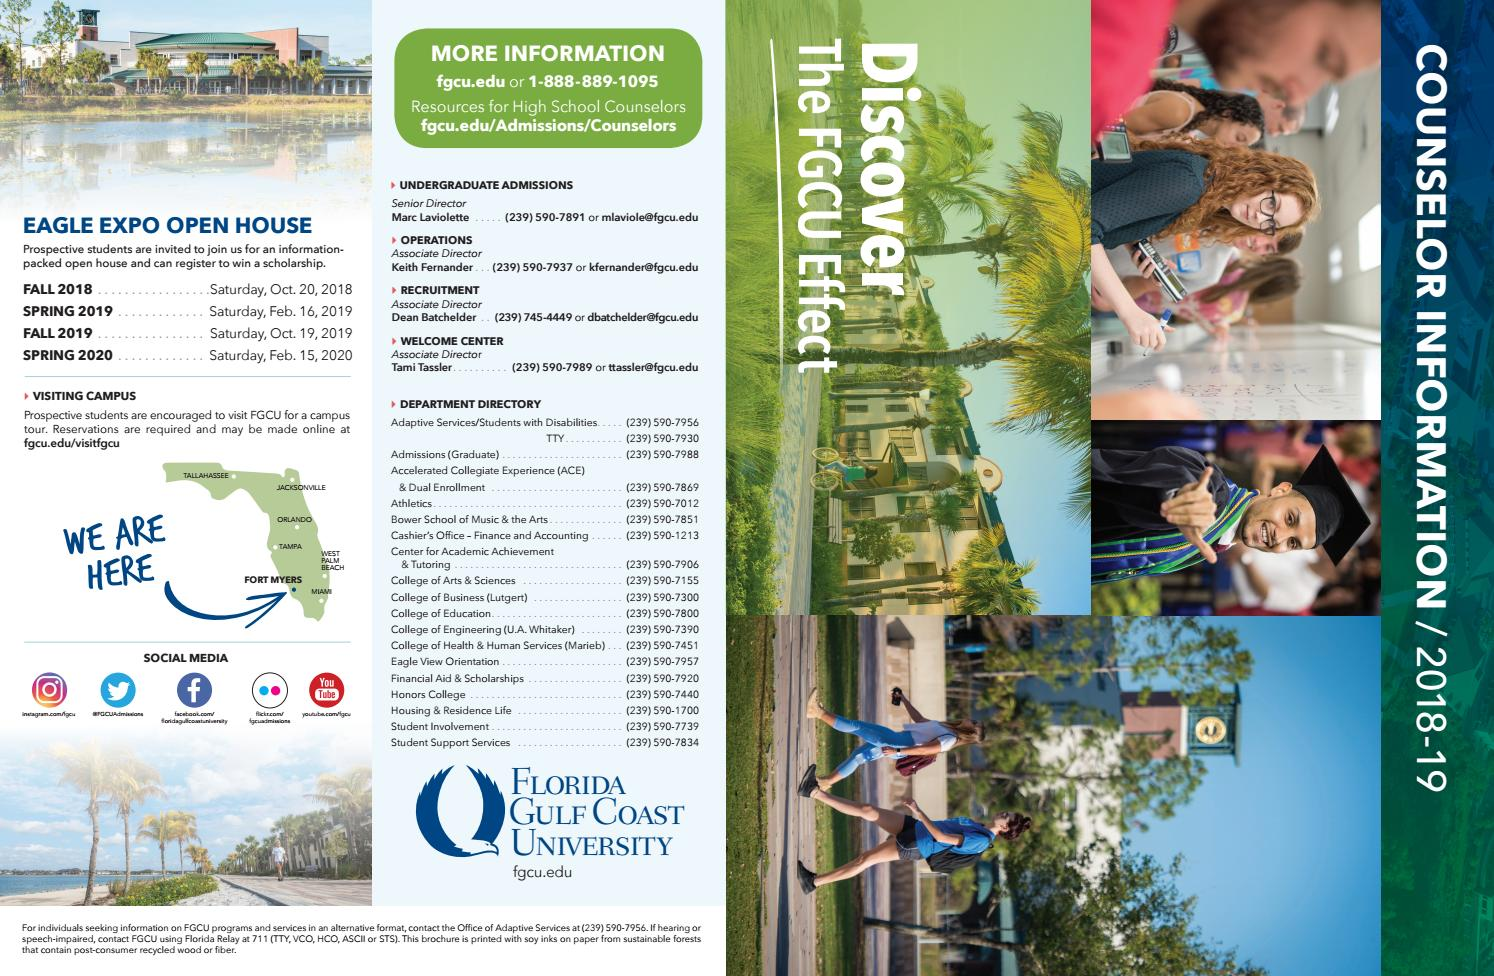 Fgcu Schedule Spring 2020.High School Counselor Information 2018 19 By Florida Gulf